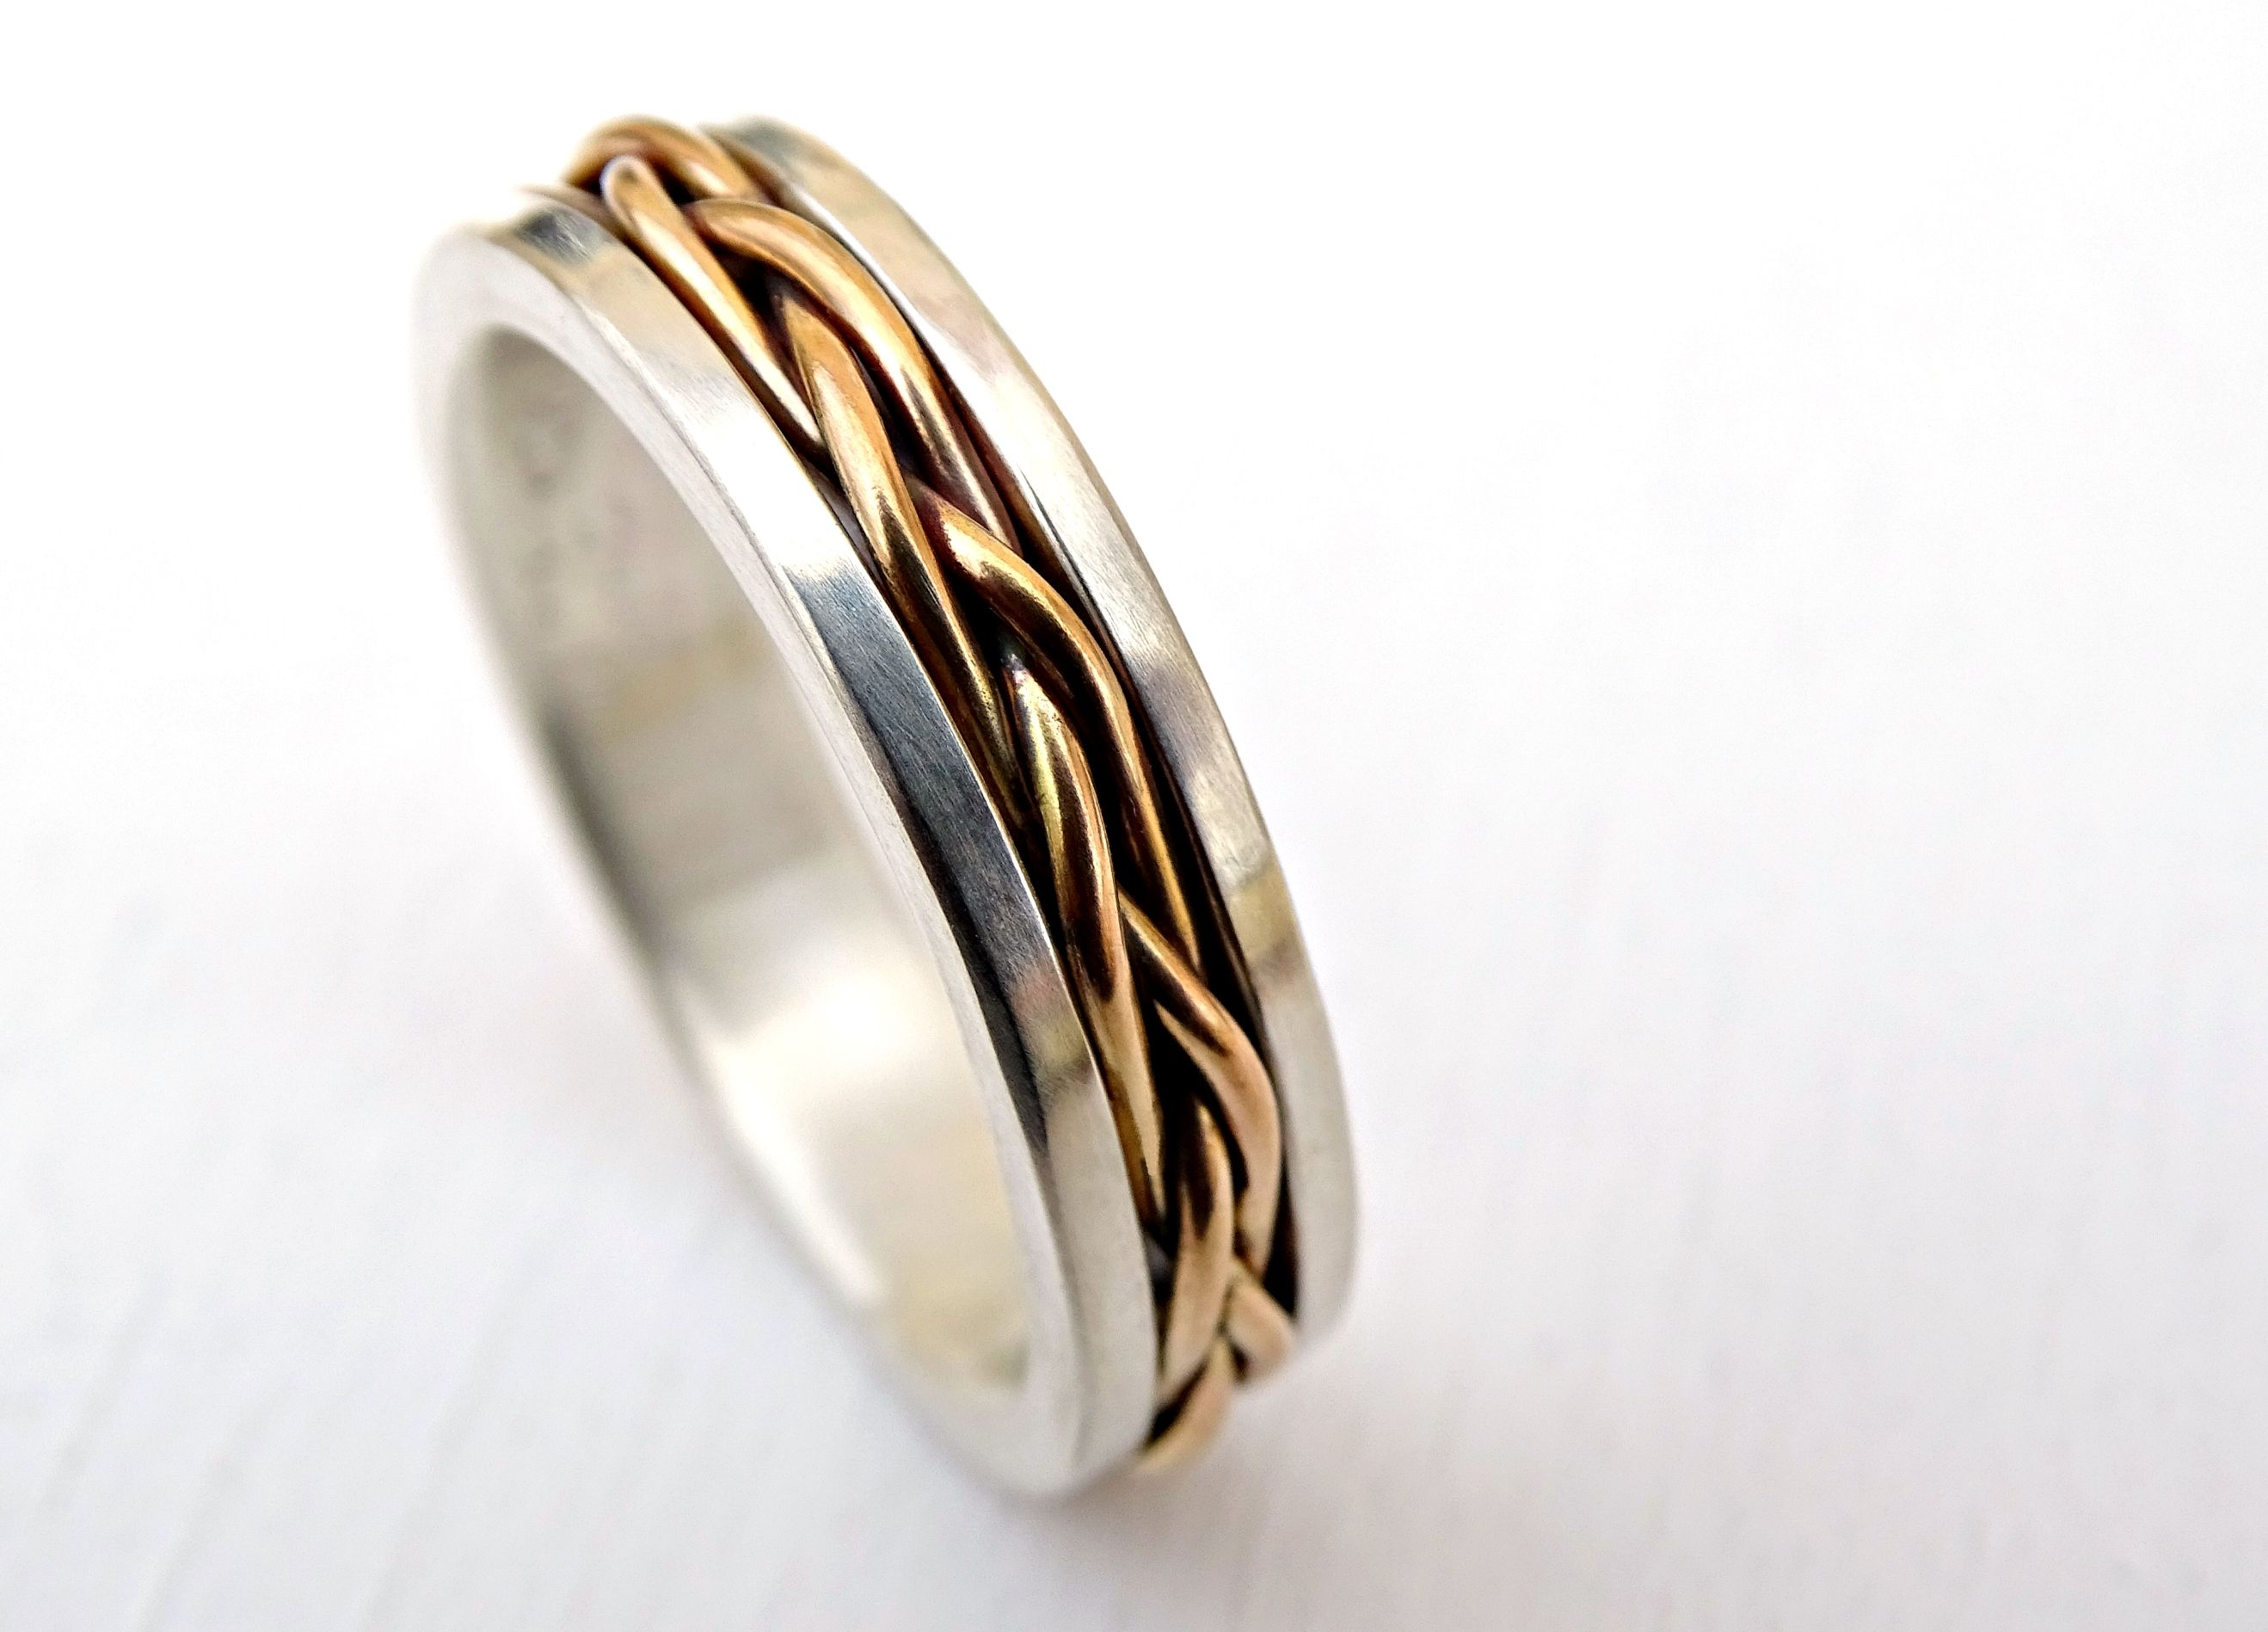 rings statement gold from com etsy now sapphire ringscollection man ori buy details ring